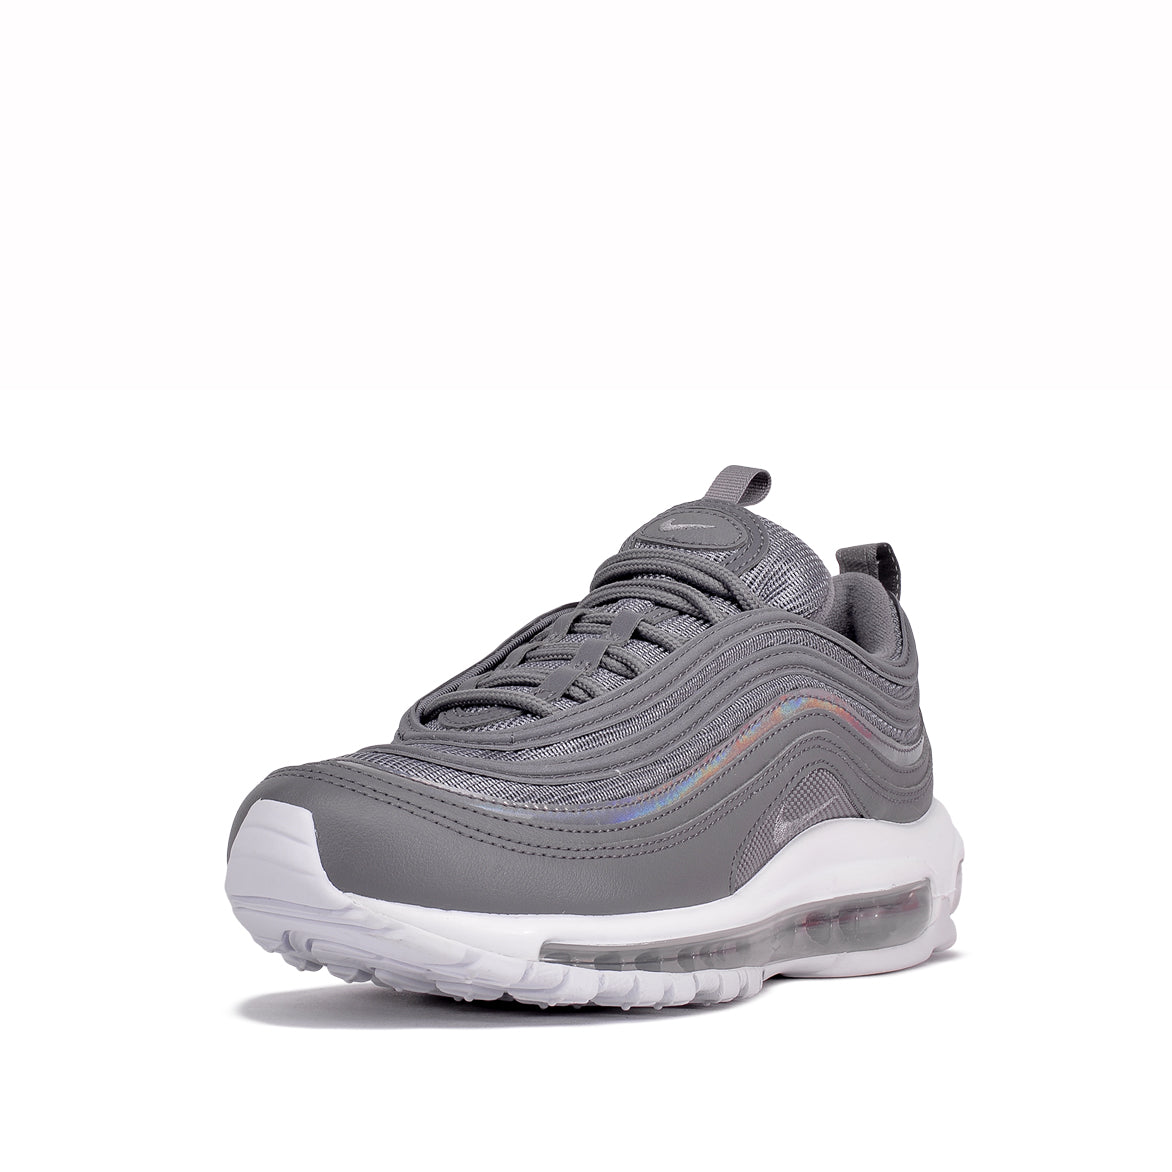 AIR MAX 97 (GS) - GUNSMOKE